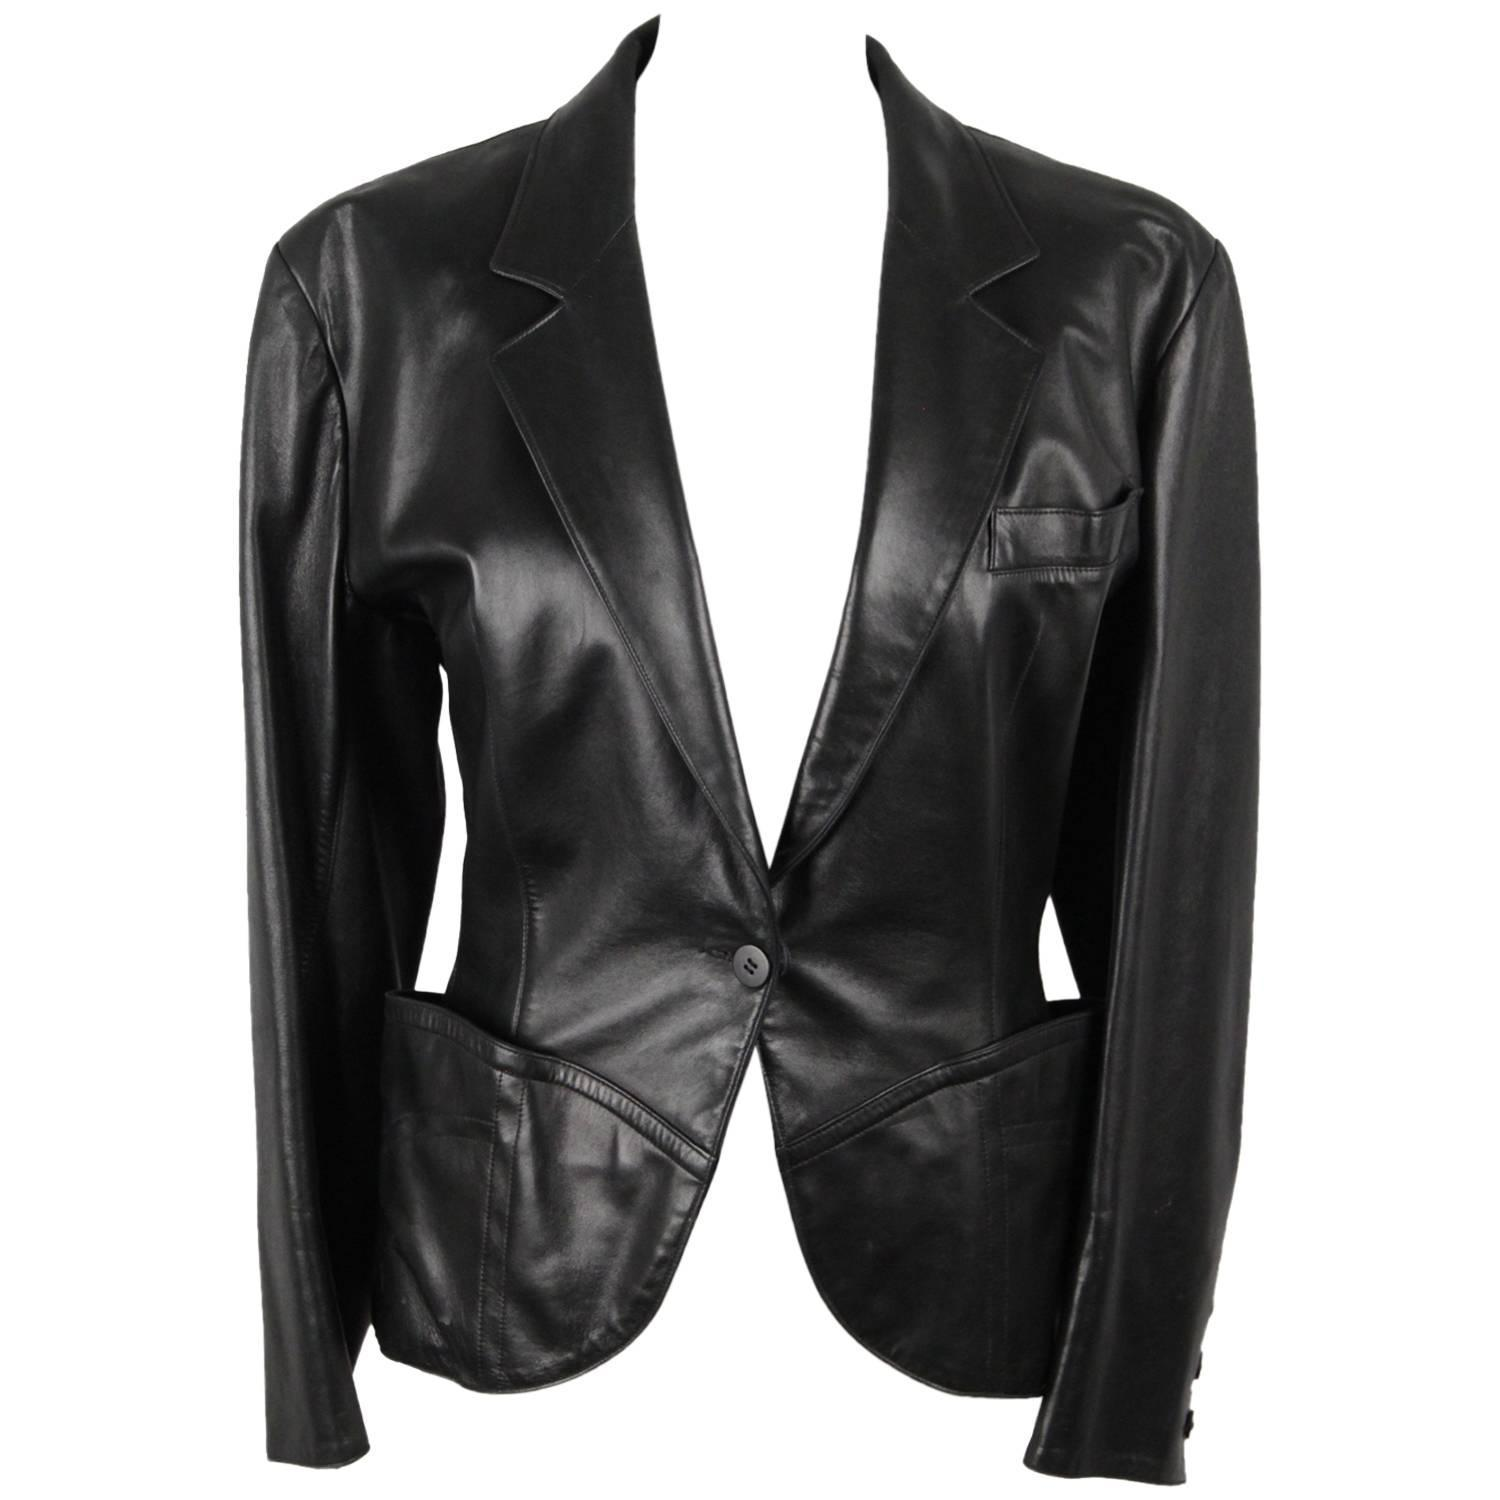 Though Men's black leather jacket is a casual wear that is highly suitable for informal settings and doesn't fit for board room formality, by pairing it with blending dress shirt, tie and formal slacks, you can embrace a professional look with a rugged touch.